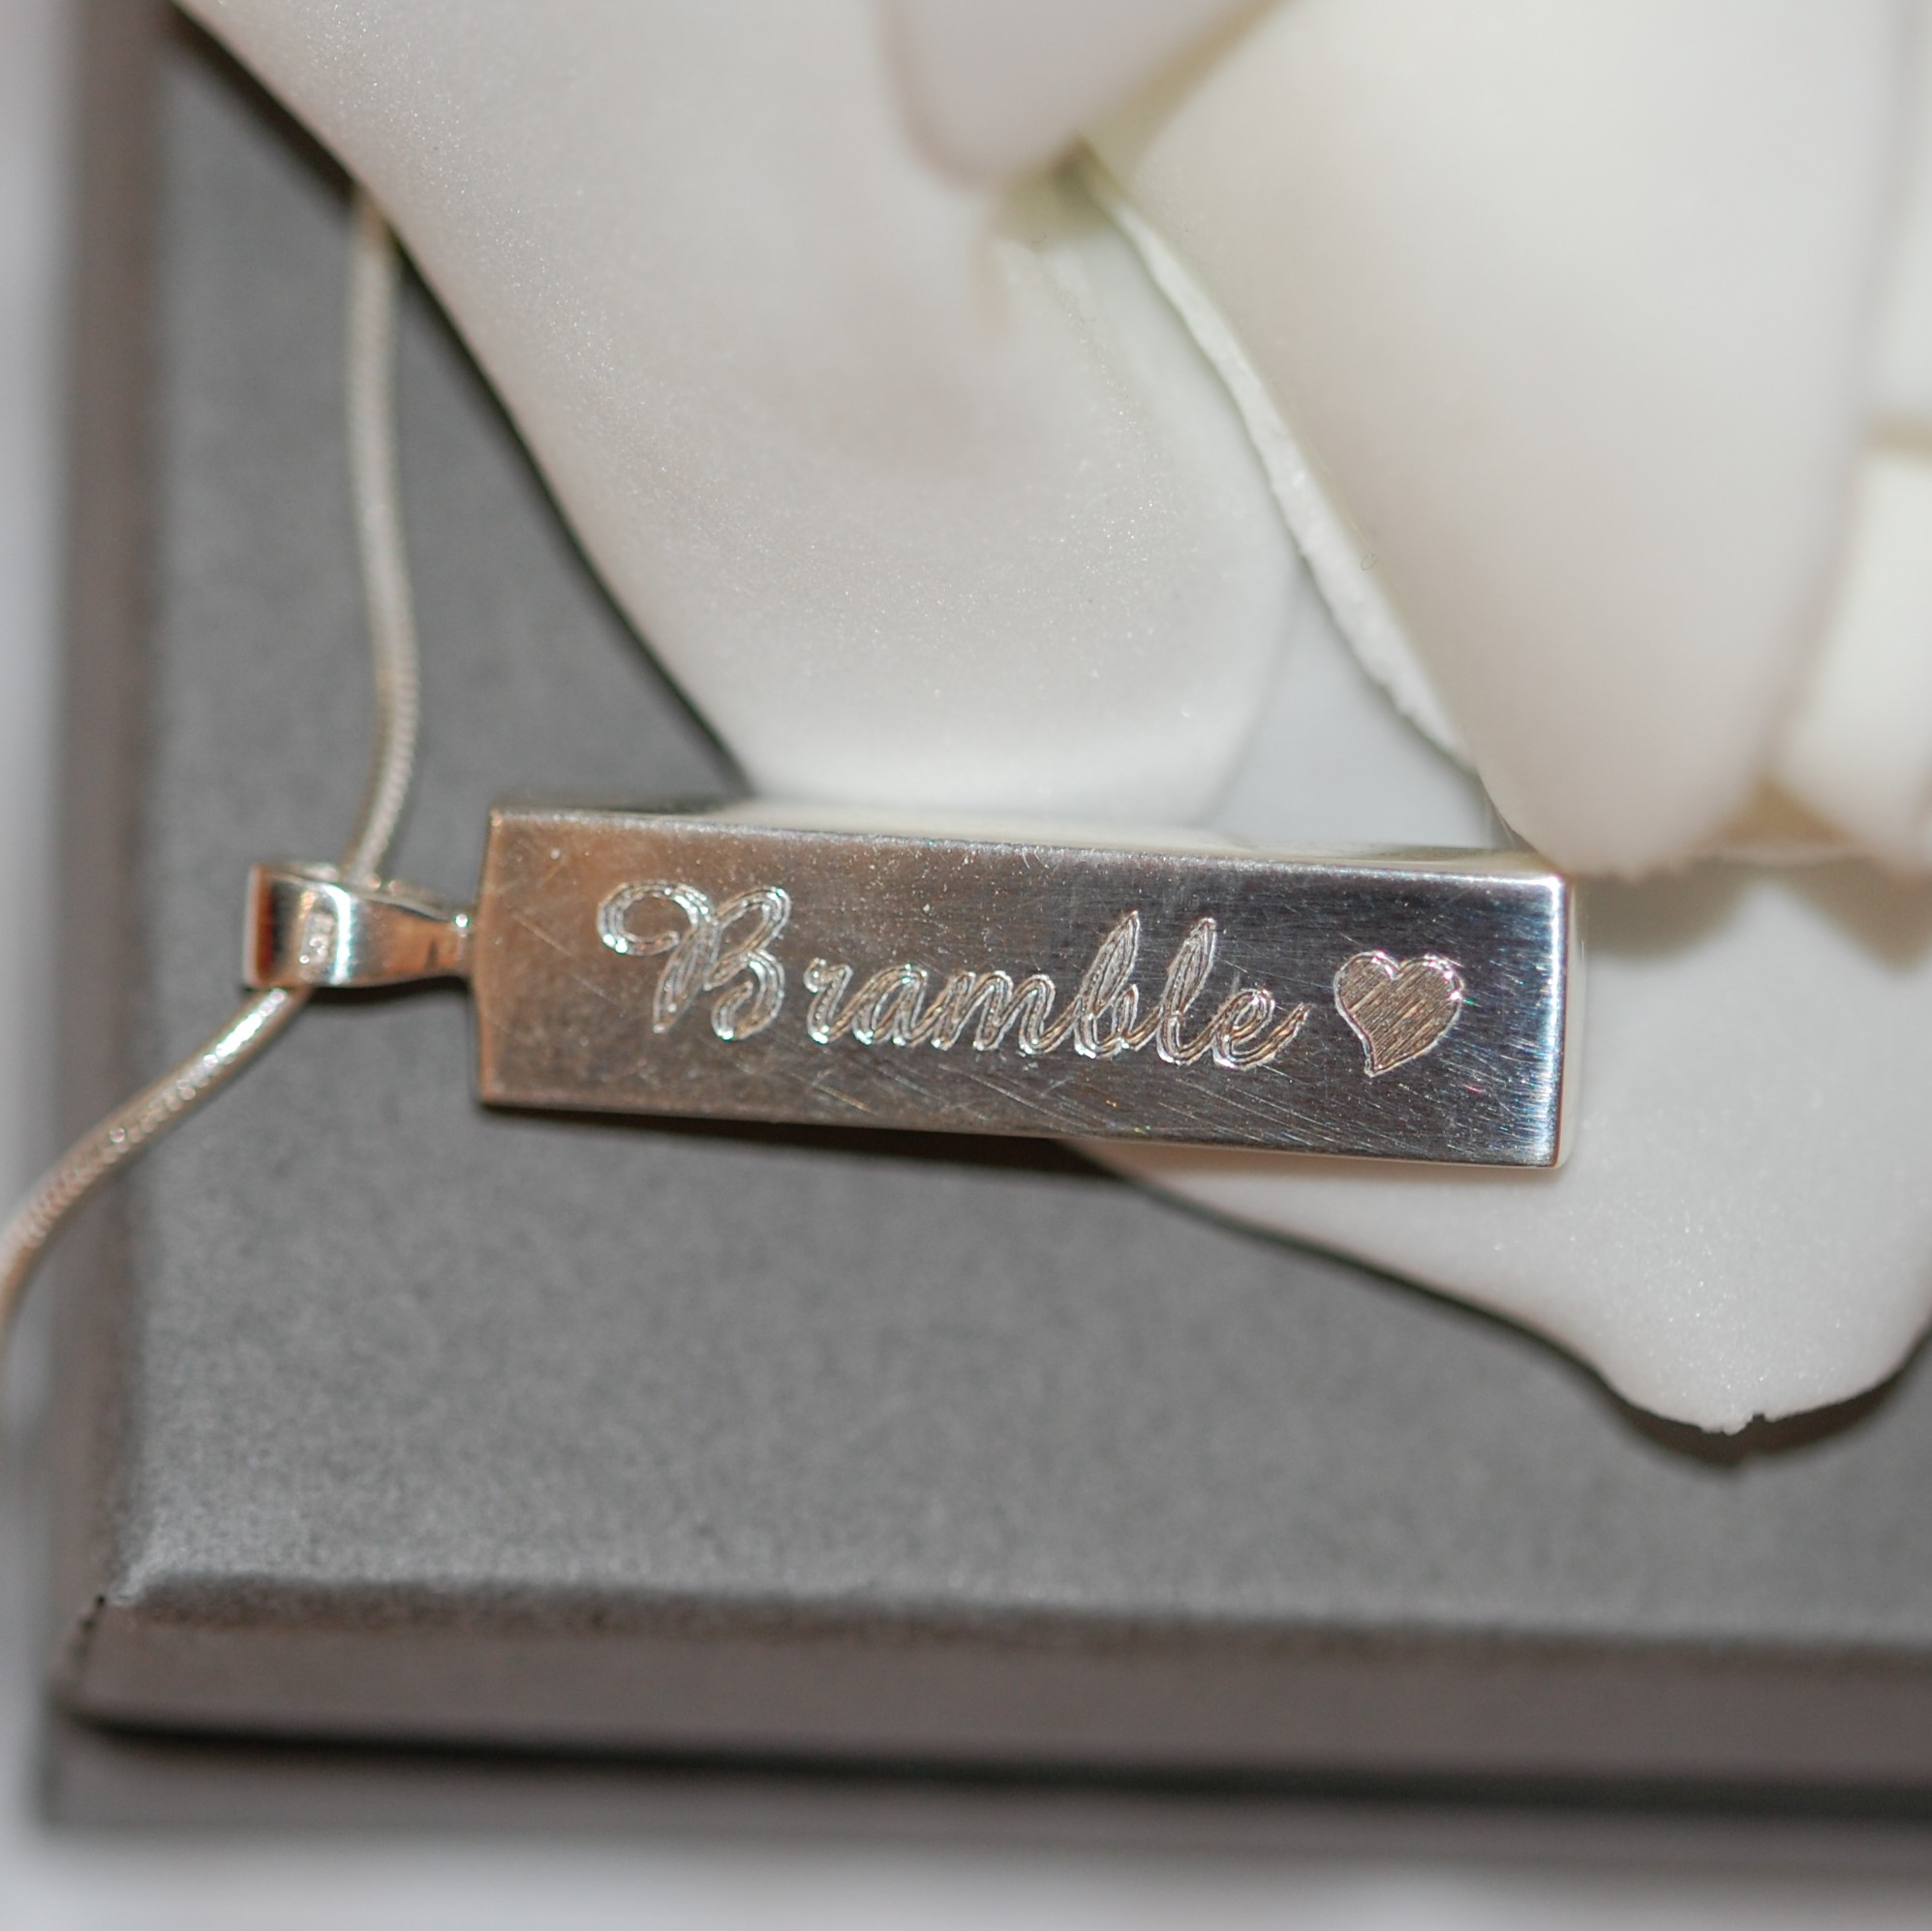 Silver rectangle pendant professionally engraved with Bramble